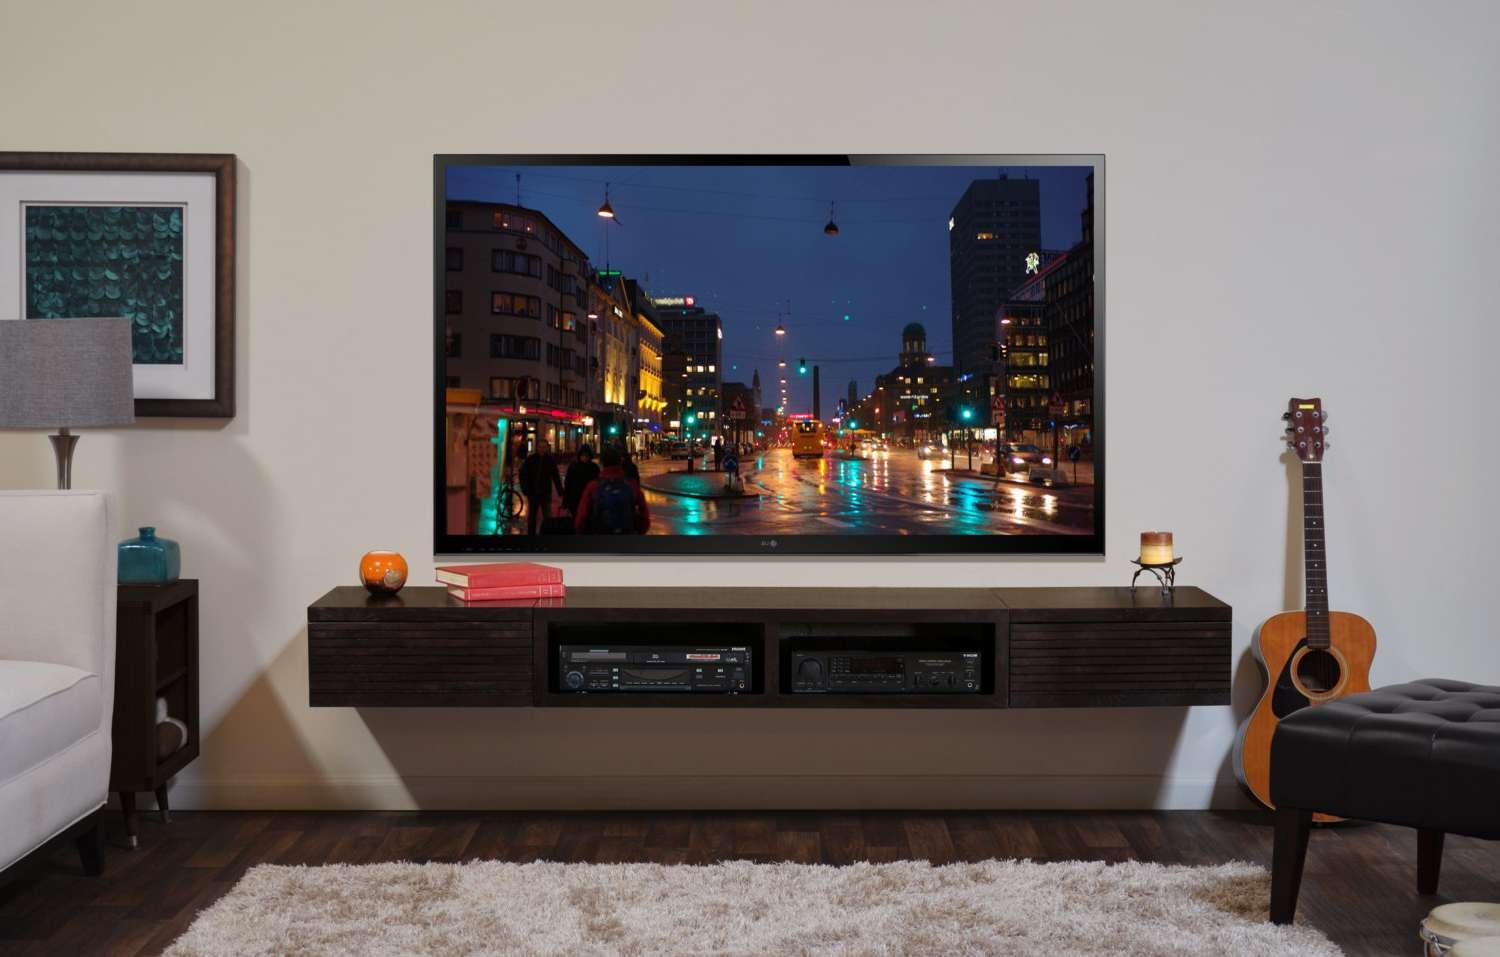 Wall Mounted Tv Stand Entertainment Console Mayan Espresso With Regard To Wall Mounted Tv Stands Entertainment Consoles (View 10 of 15)